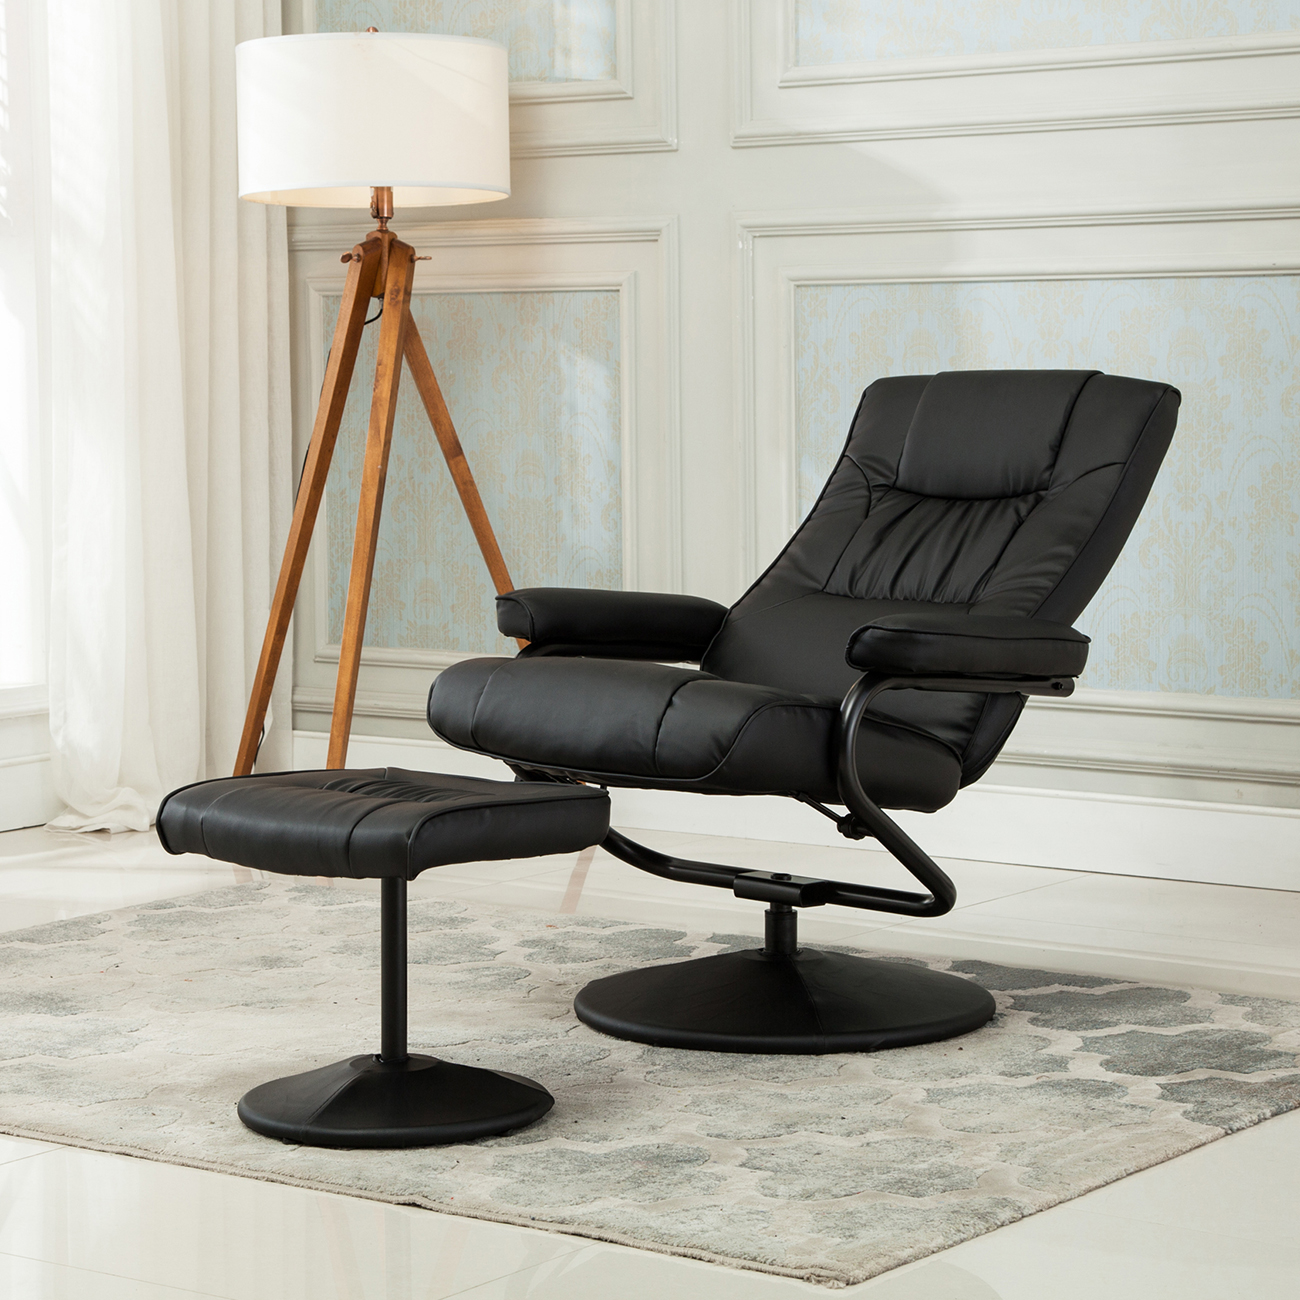 chair stool with footrest embody review recliner swivel armchair lounge seat w